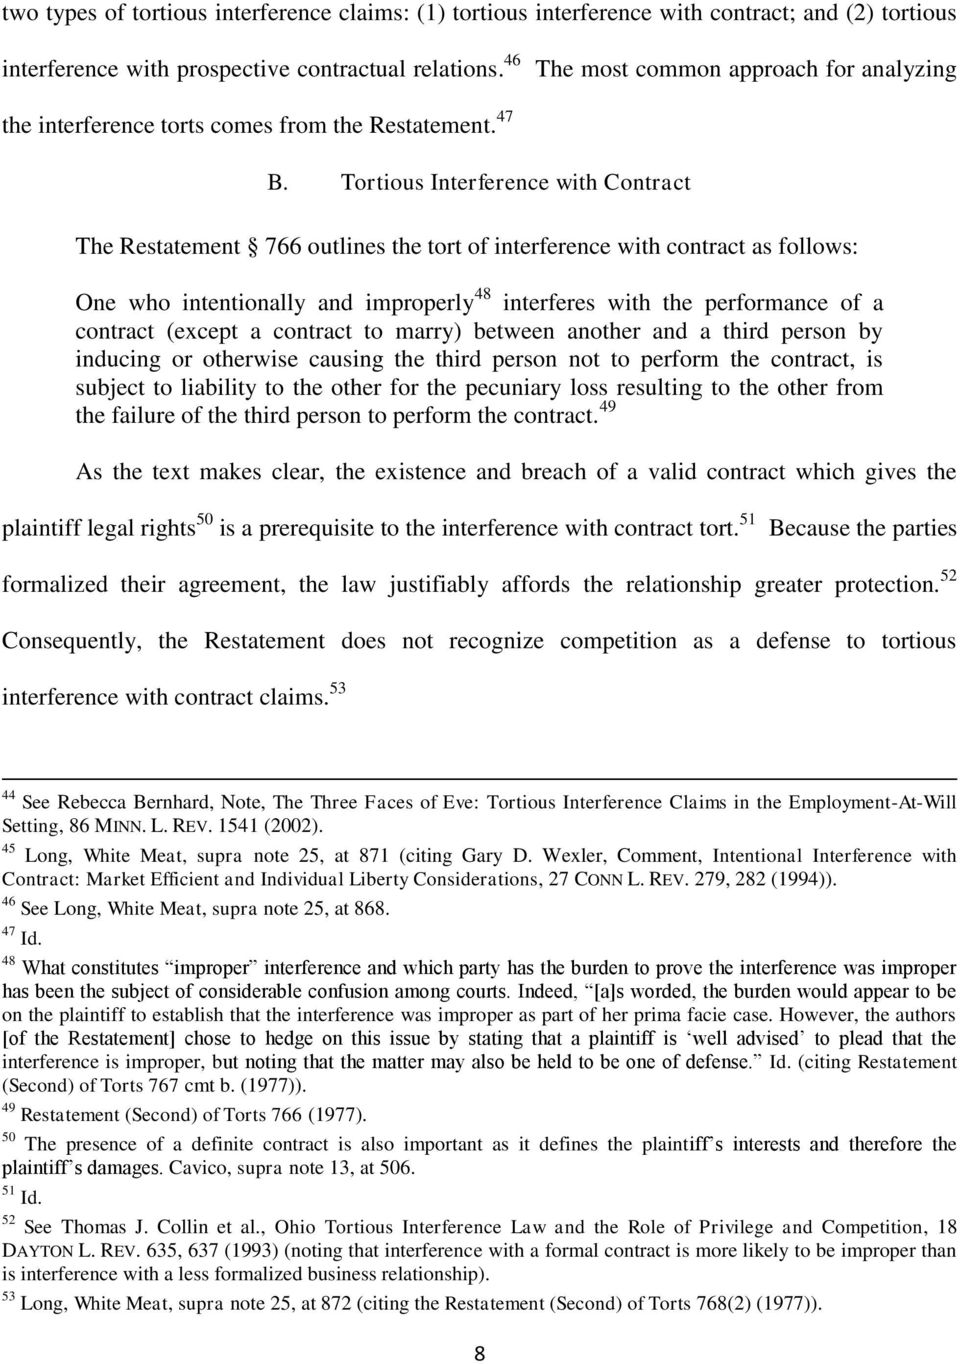 Tortious Interference with Contract The Restatement 766 outlines the tort of interference with contract as follows: One who intentionally and improperly 48 interferes with the performance of a